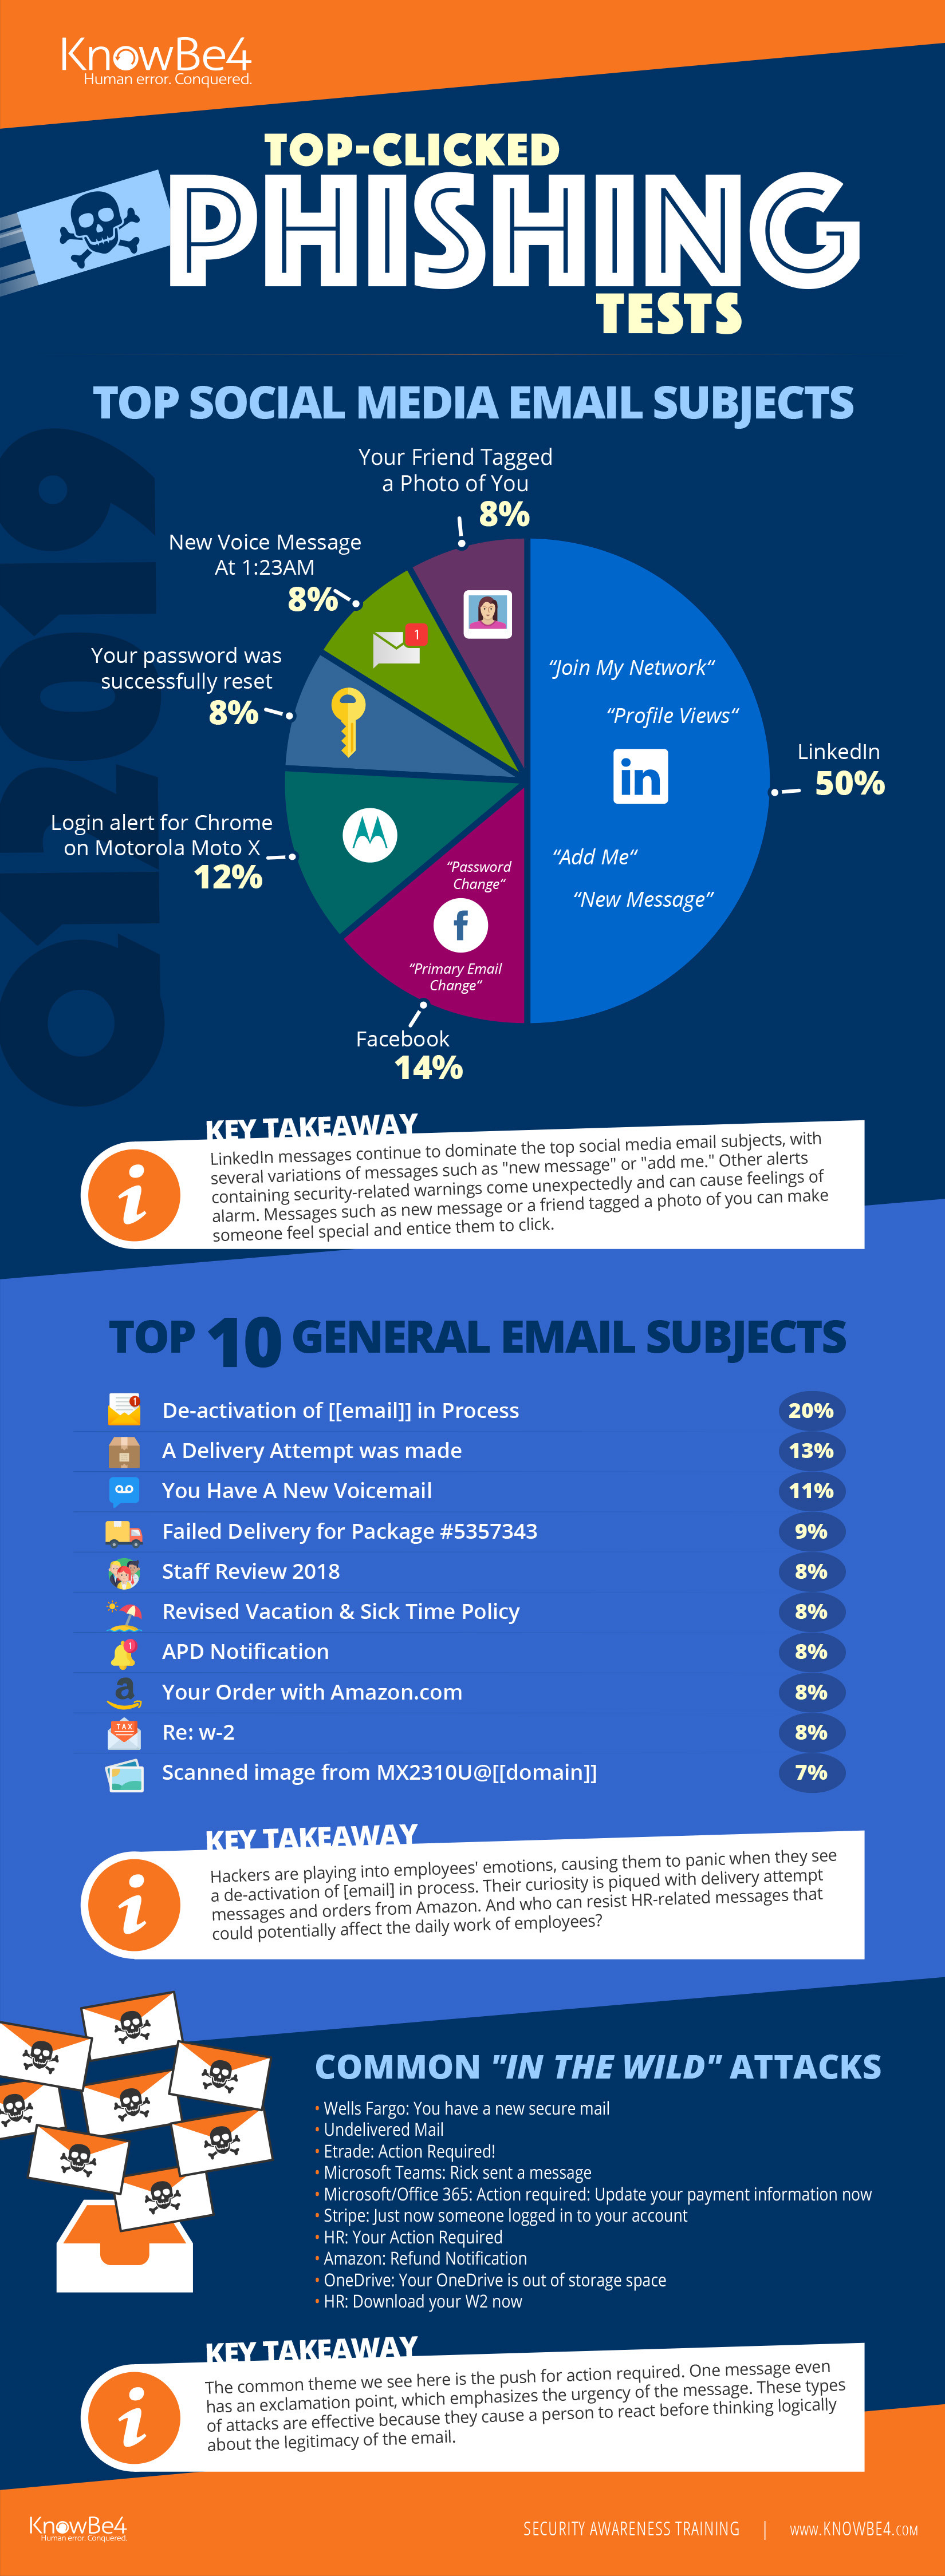 Q1-2019 Full Infographic  - Q1 2019 20Full 20Infographic - Q1 2019 Top-Clicked Phishing Email Subjects from KnowBe4 [INFOGRAPHIC]